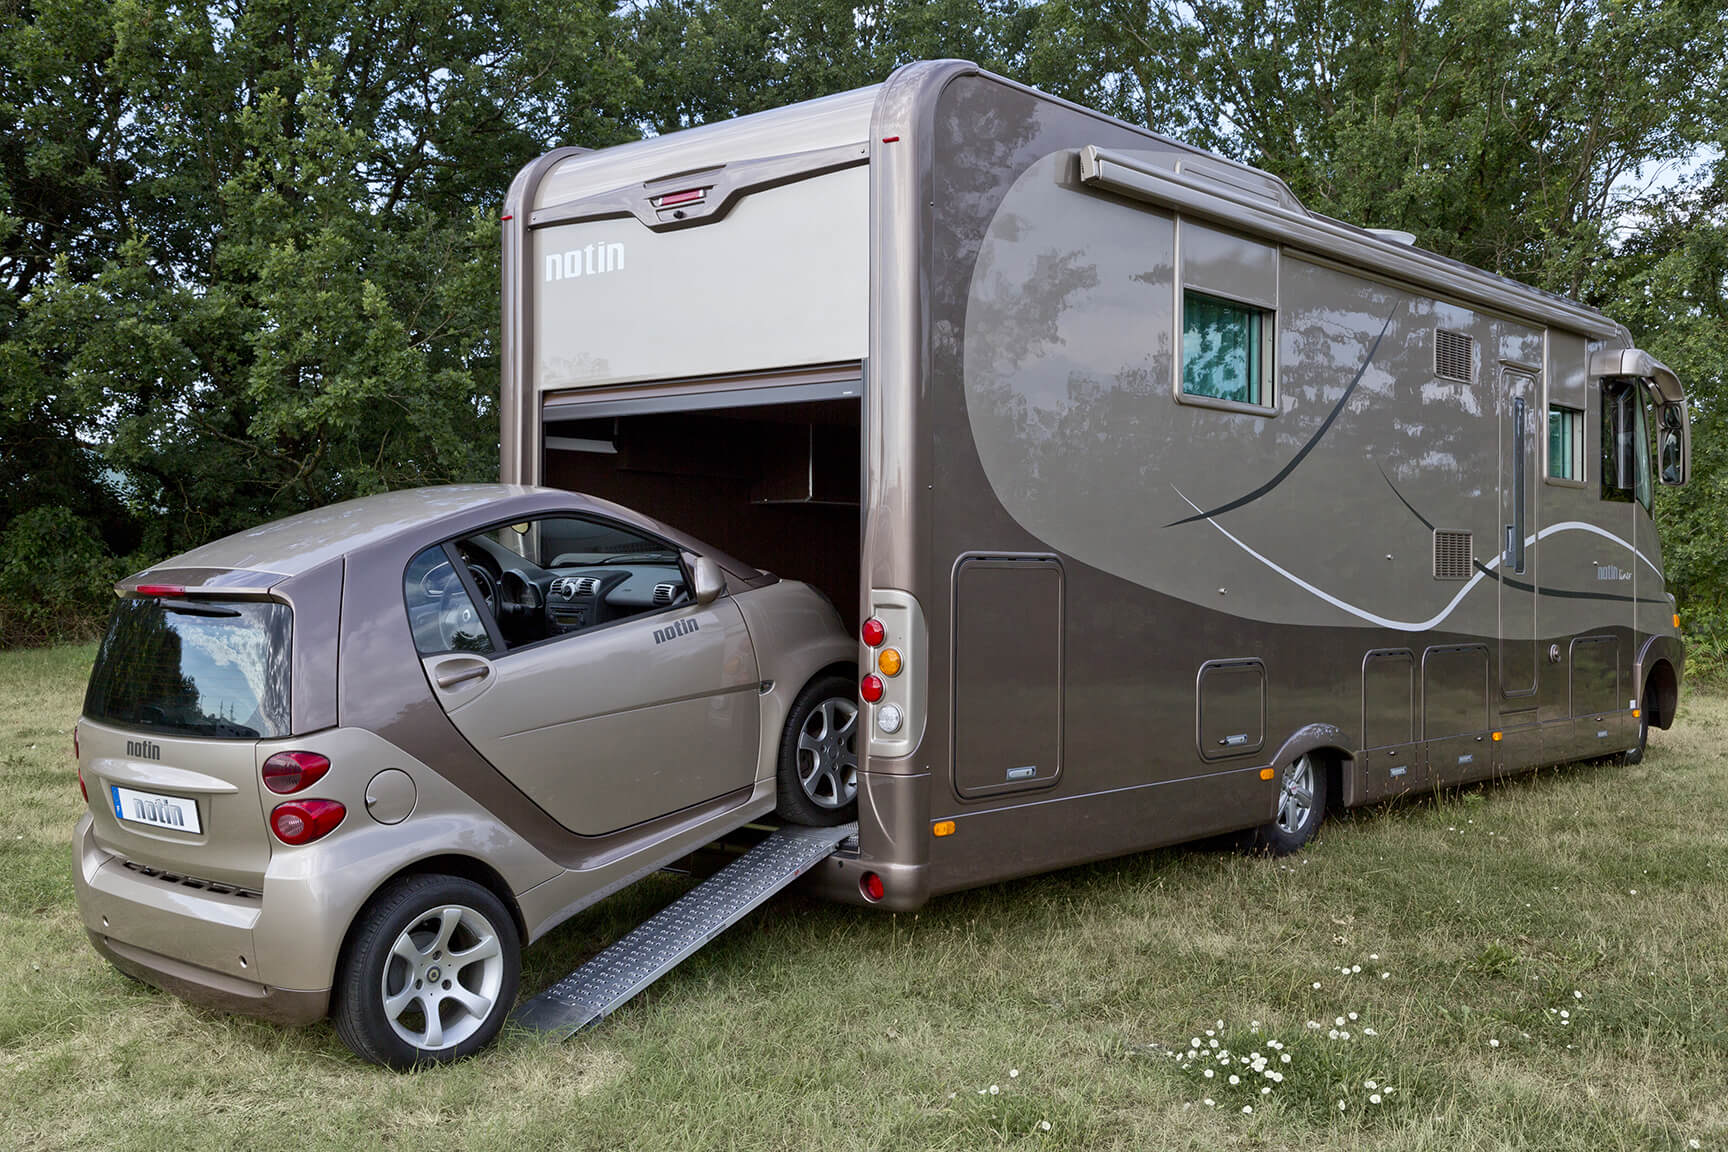 Camping car occasion bordeaux vans camping car occasion - Voiture occasion garage ile de france ...